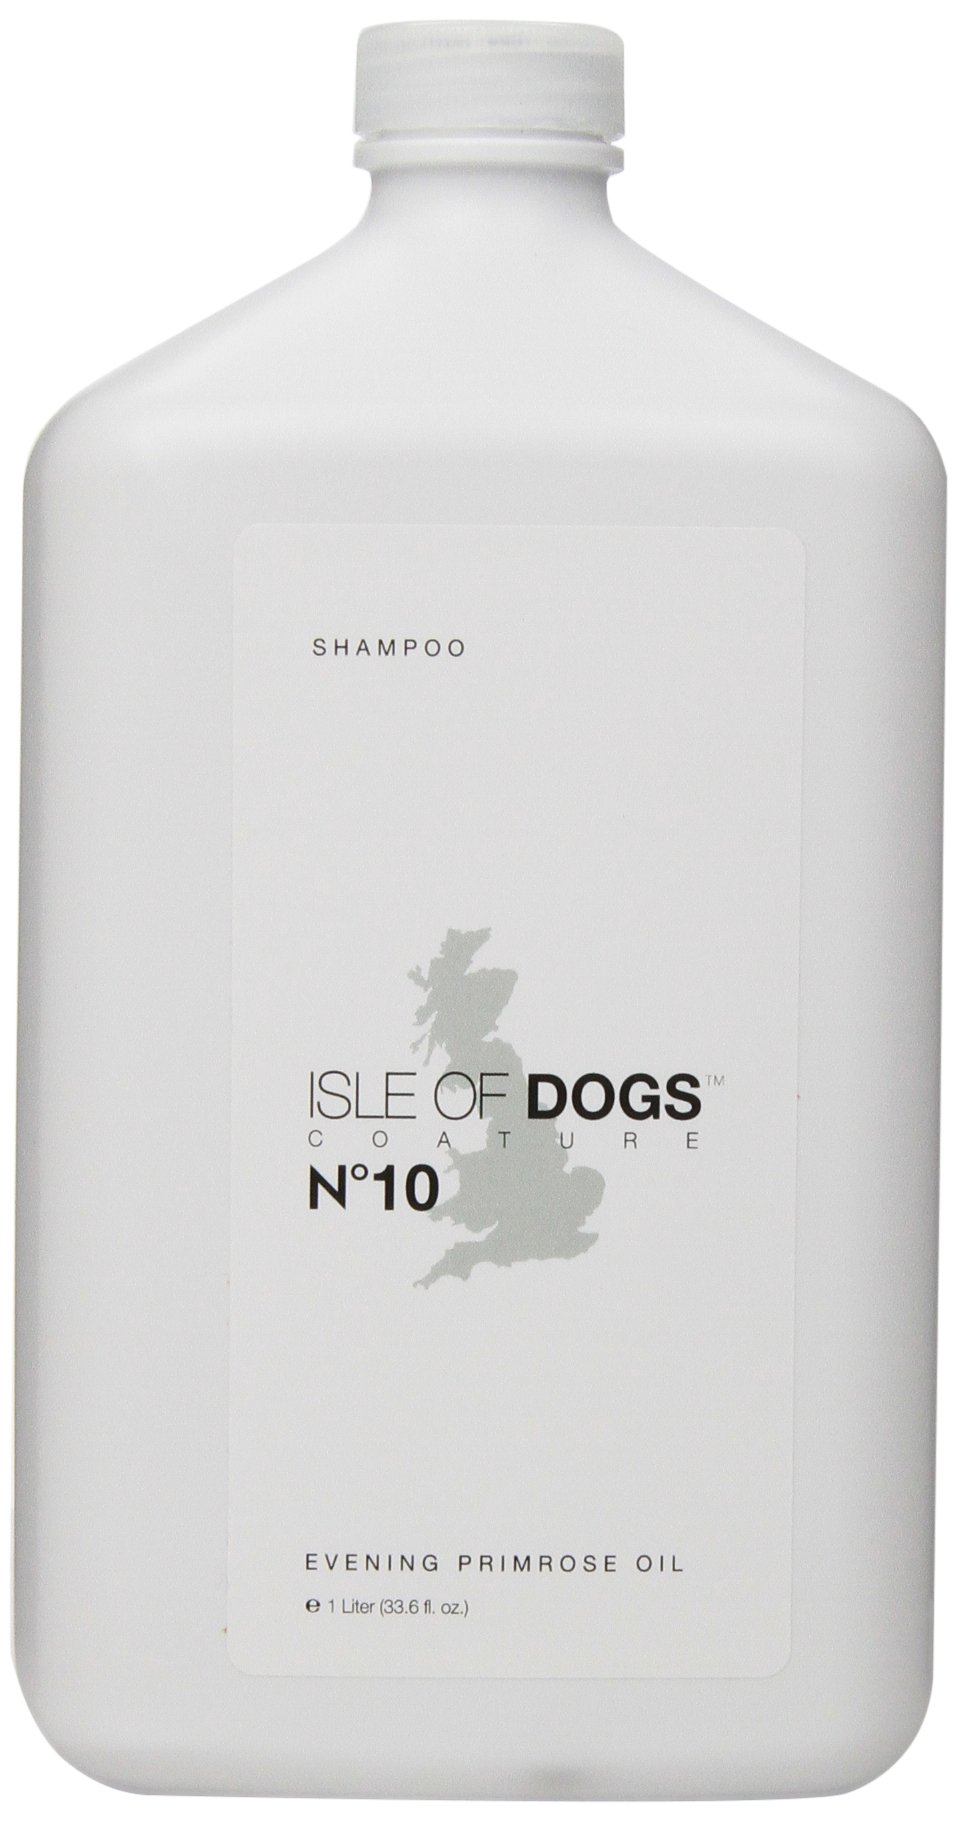 Isle of Dogs Coature No. 10 Evening Primrose Oil Dog Shampoo for Dry and Sensitive Skin, 1-Liter by Pawfectchow